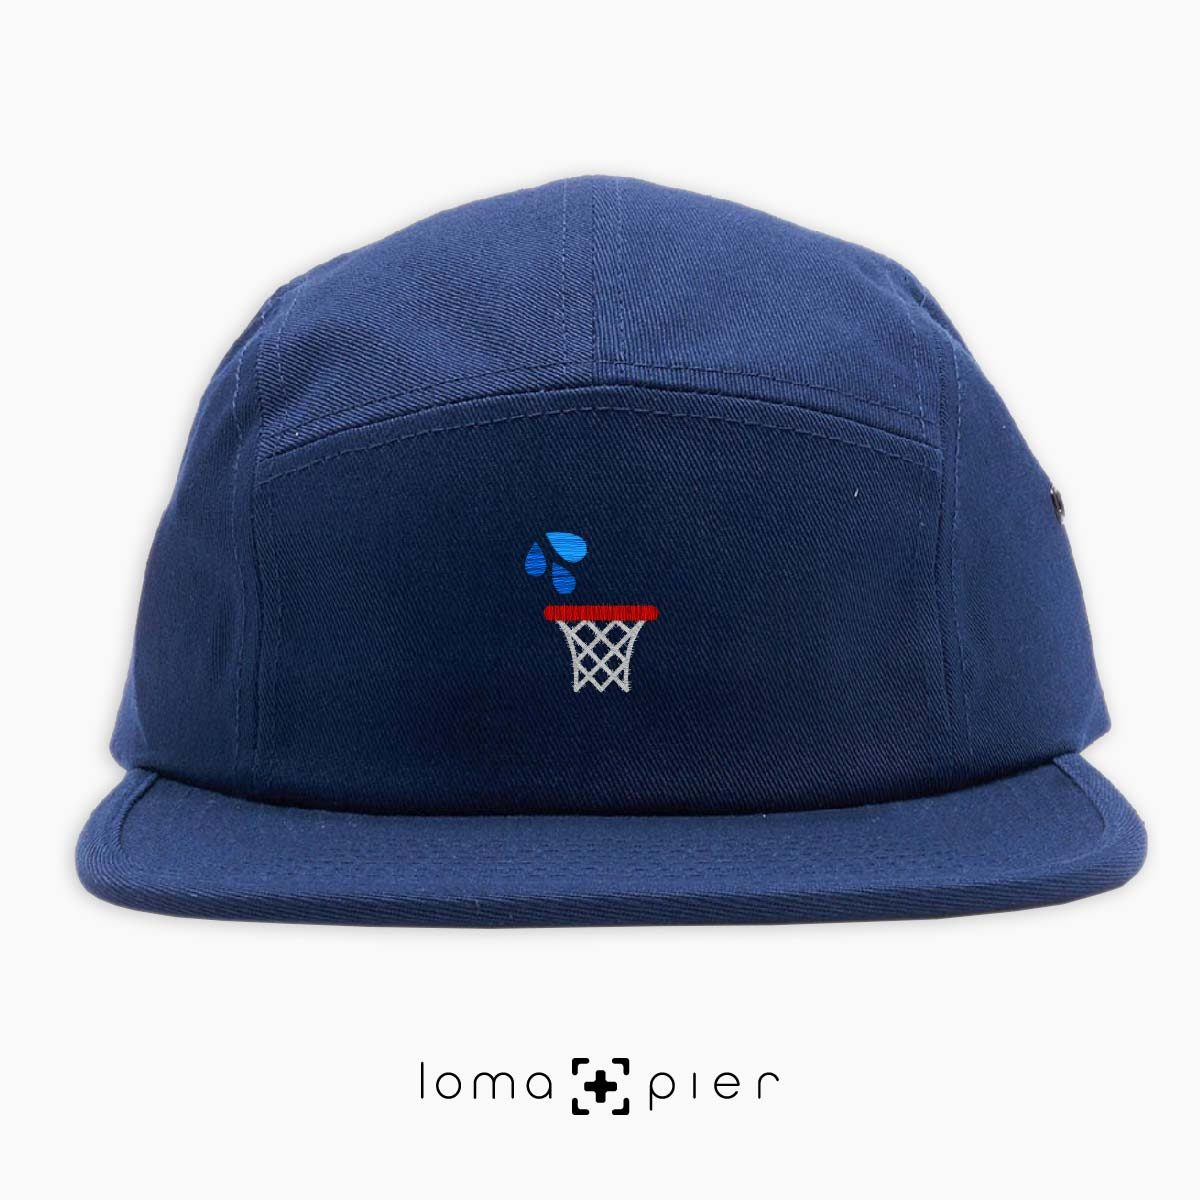 WET JUMPER basketball hoop icon embroidered on a navy blue cotton 5-panel hat by loma+pier hat store